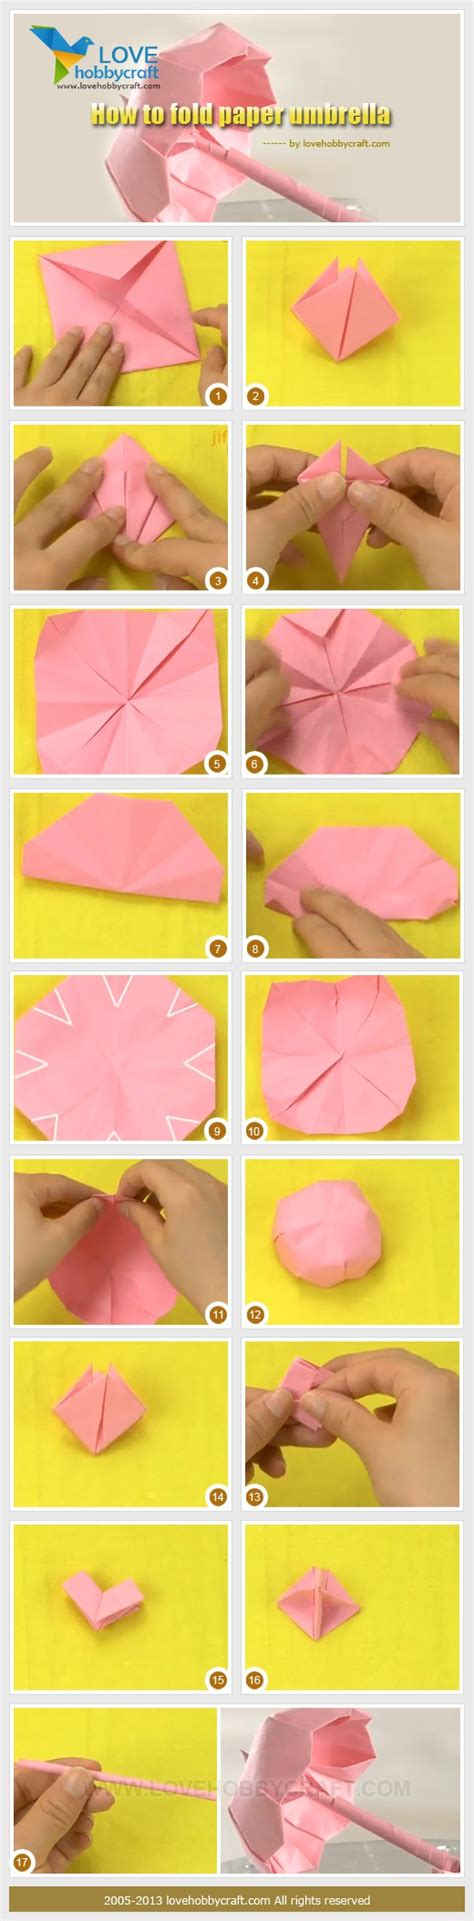 How To Make An Origami Umbrella - step guide for paper umbrella crafts